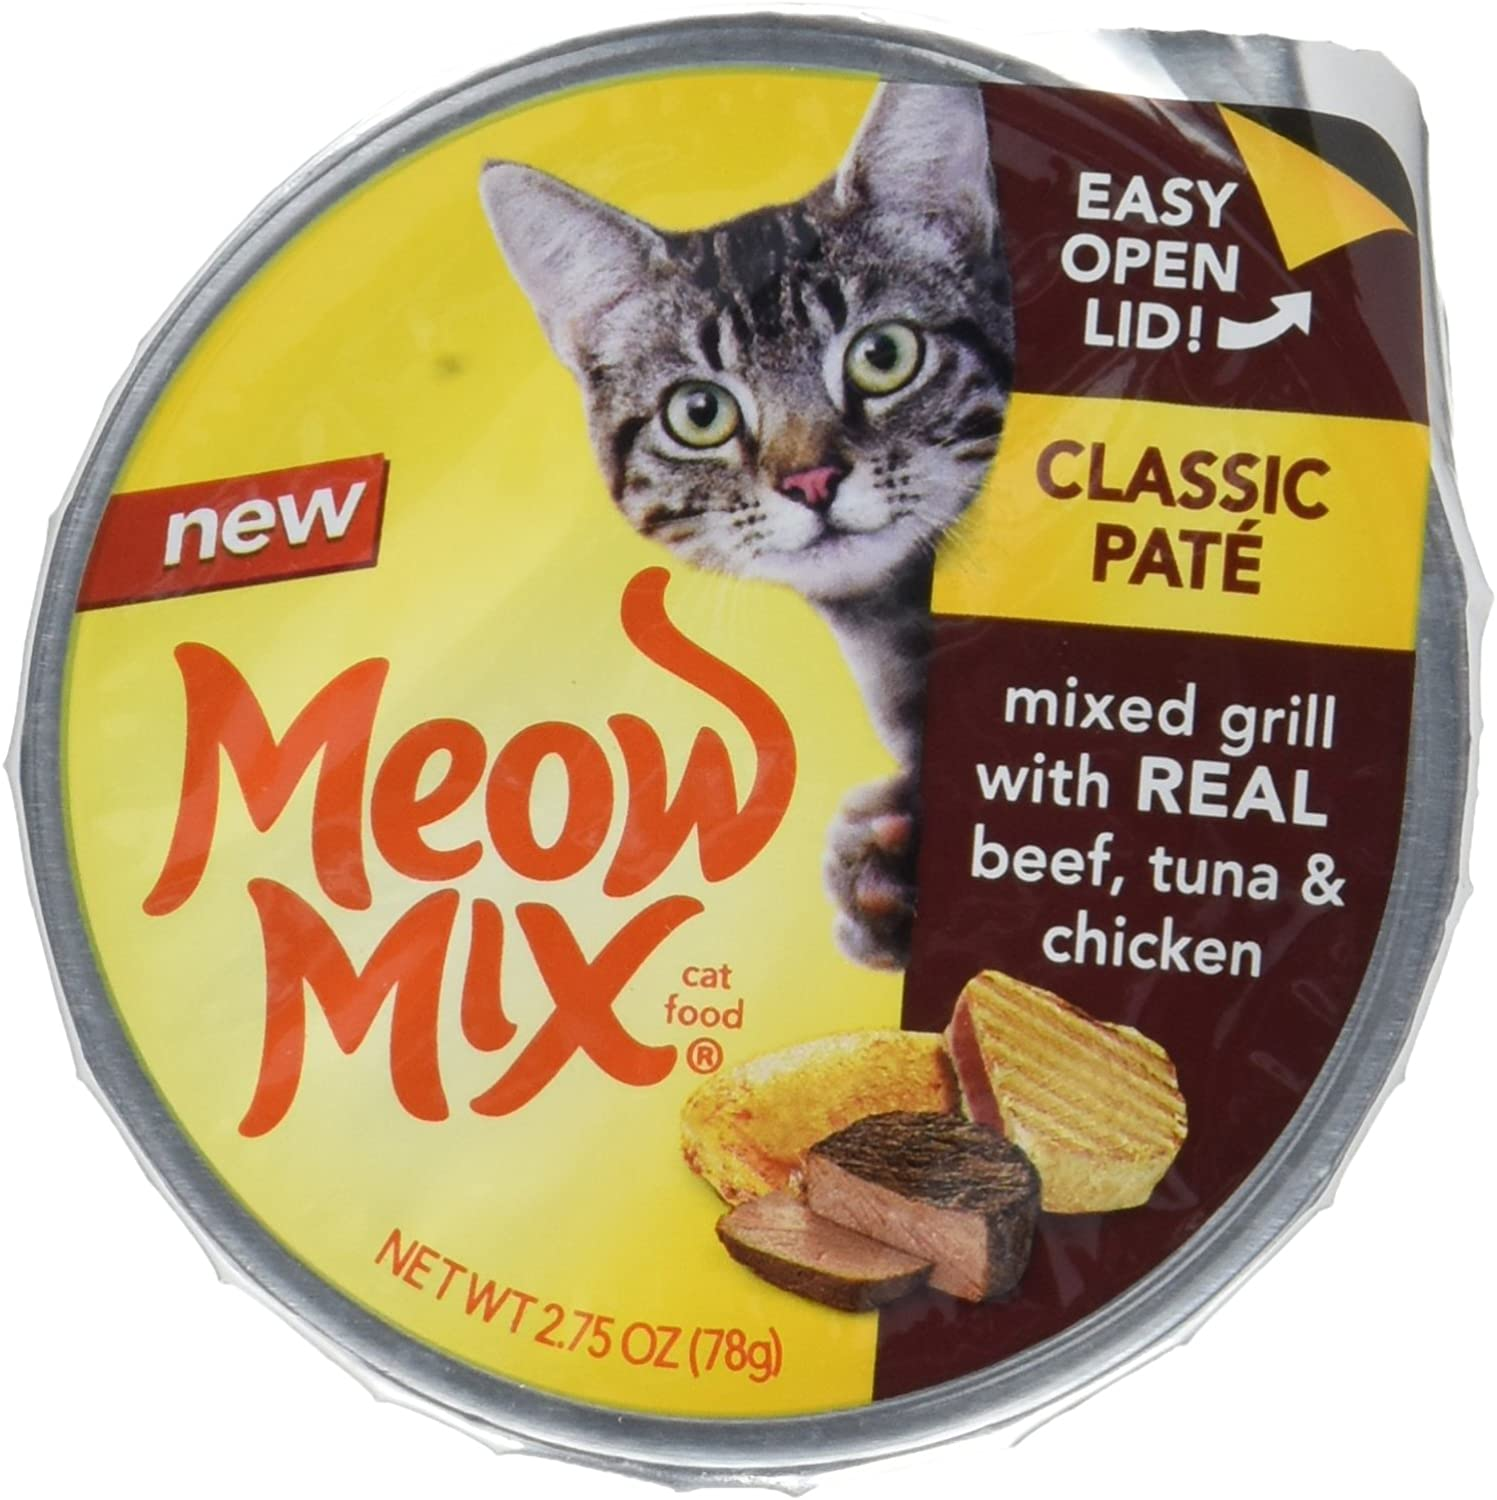 Meow Mix 829274148870 2.75 oz Mixed Grilled Pate Wet Cat Food (12 Pack), One Size